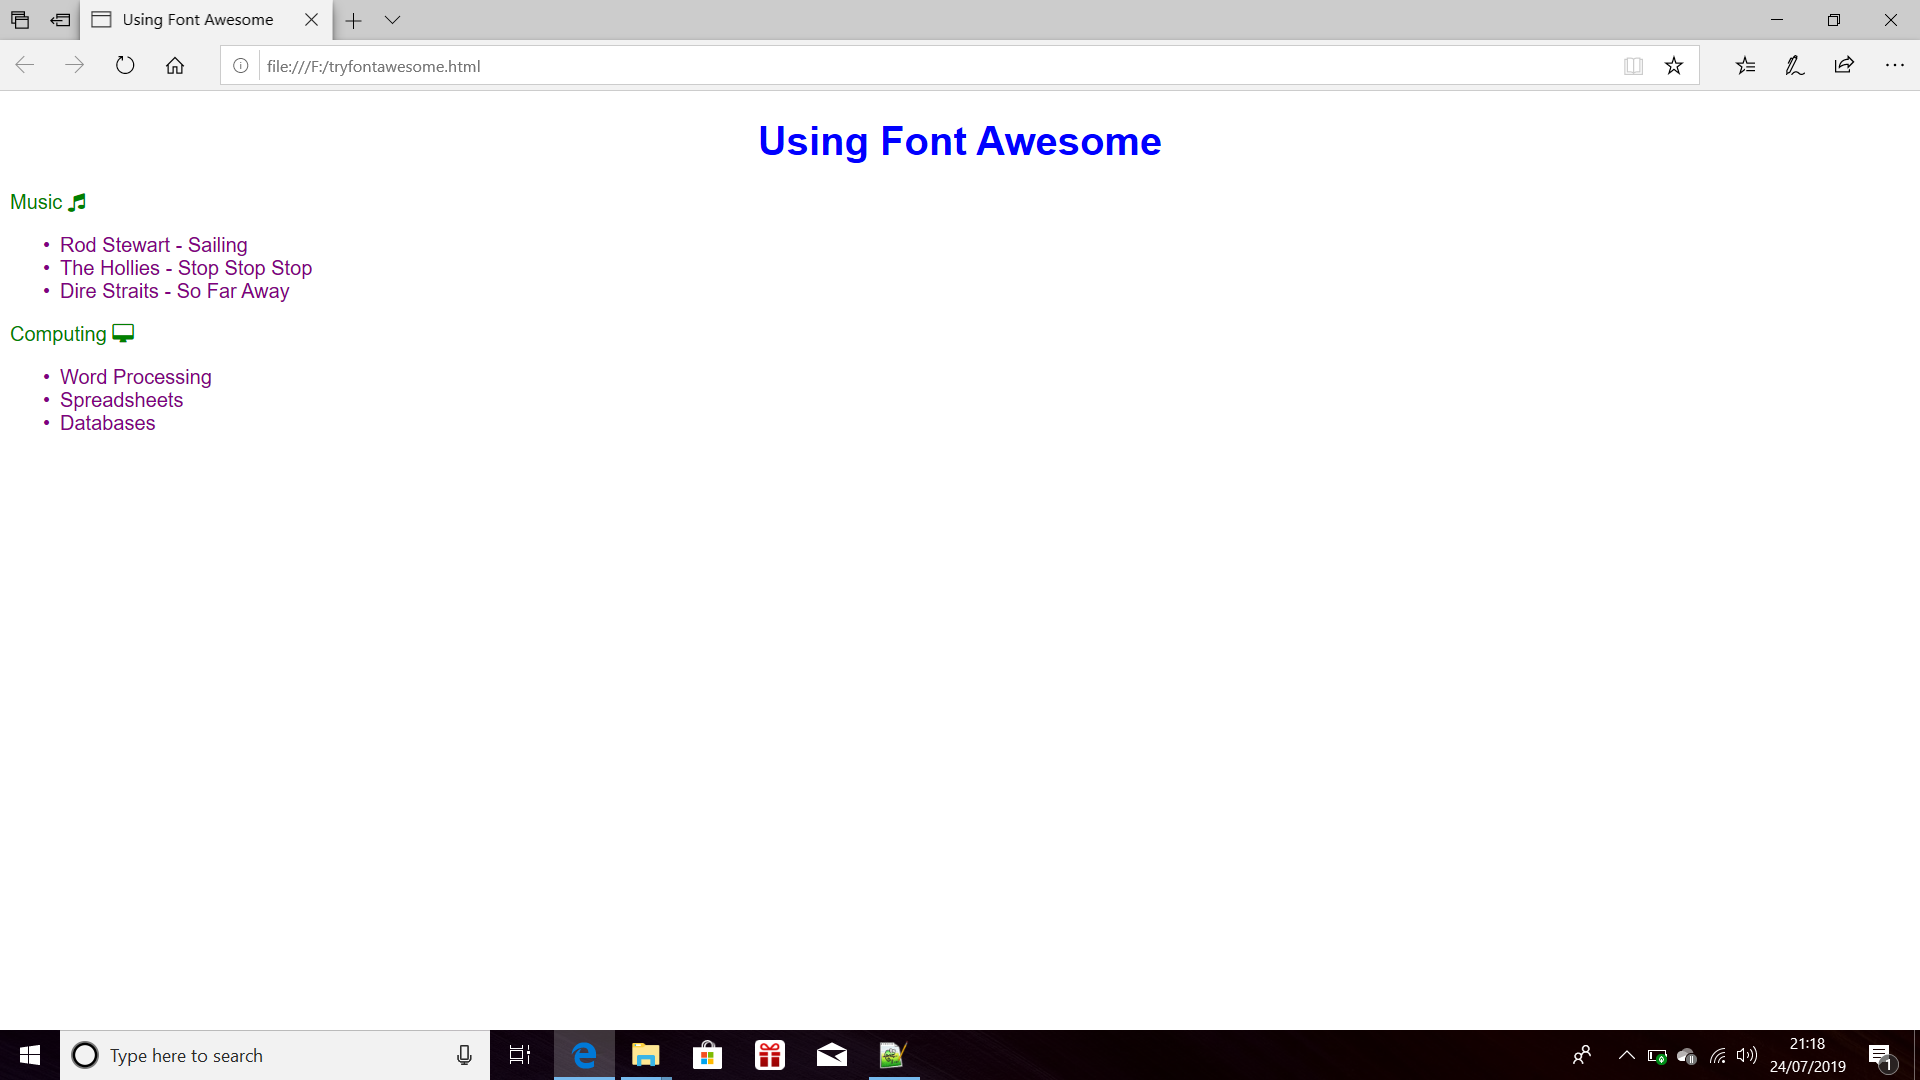 Screenshot of a Previewed Web Page using Font Awesome for